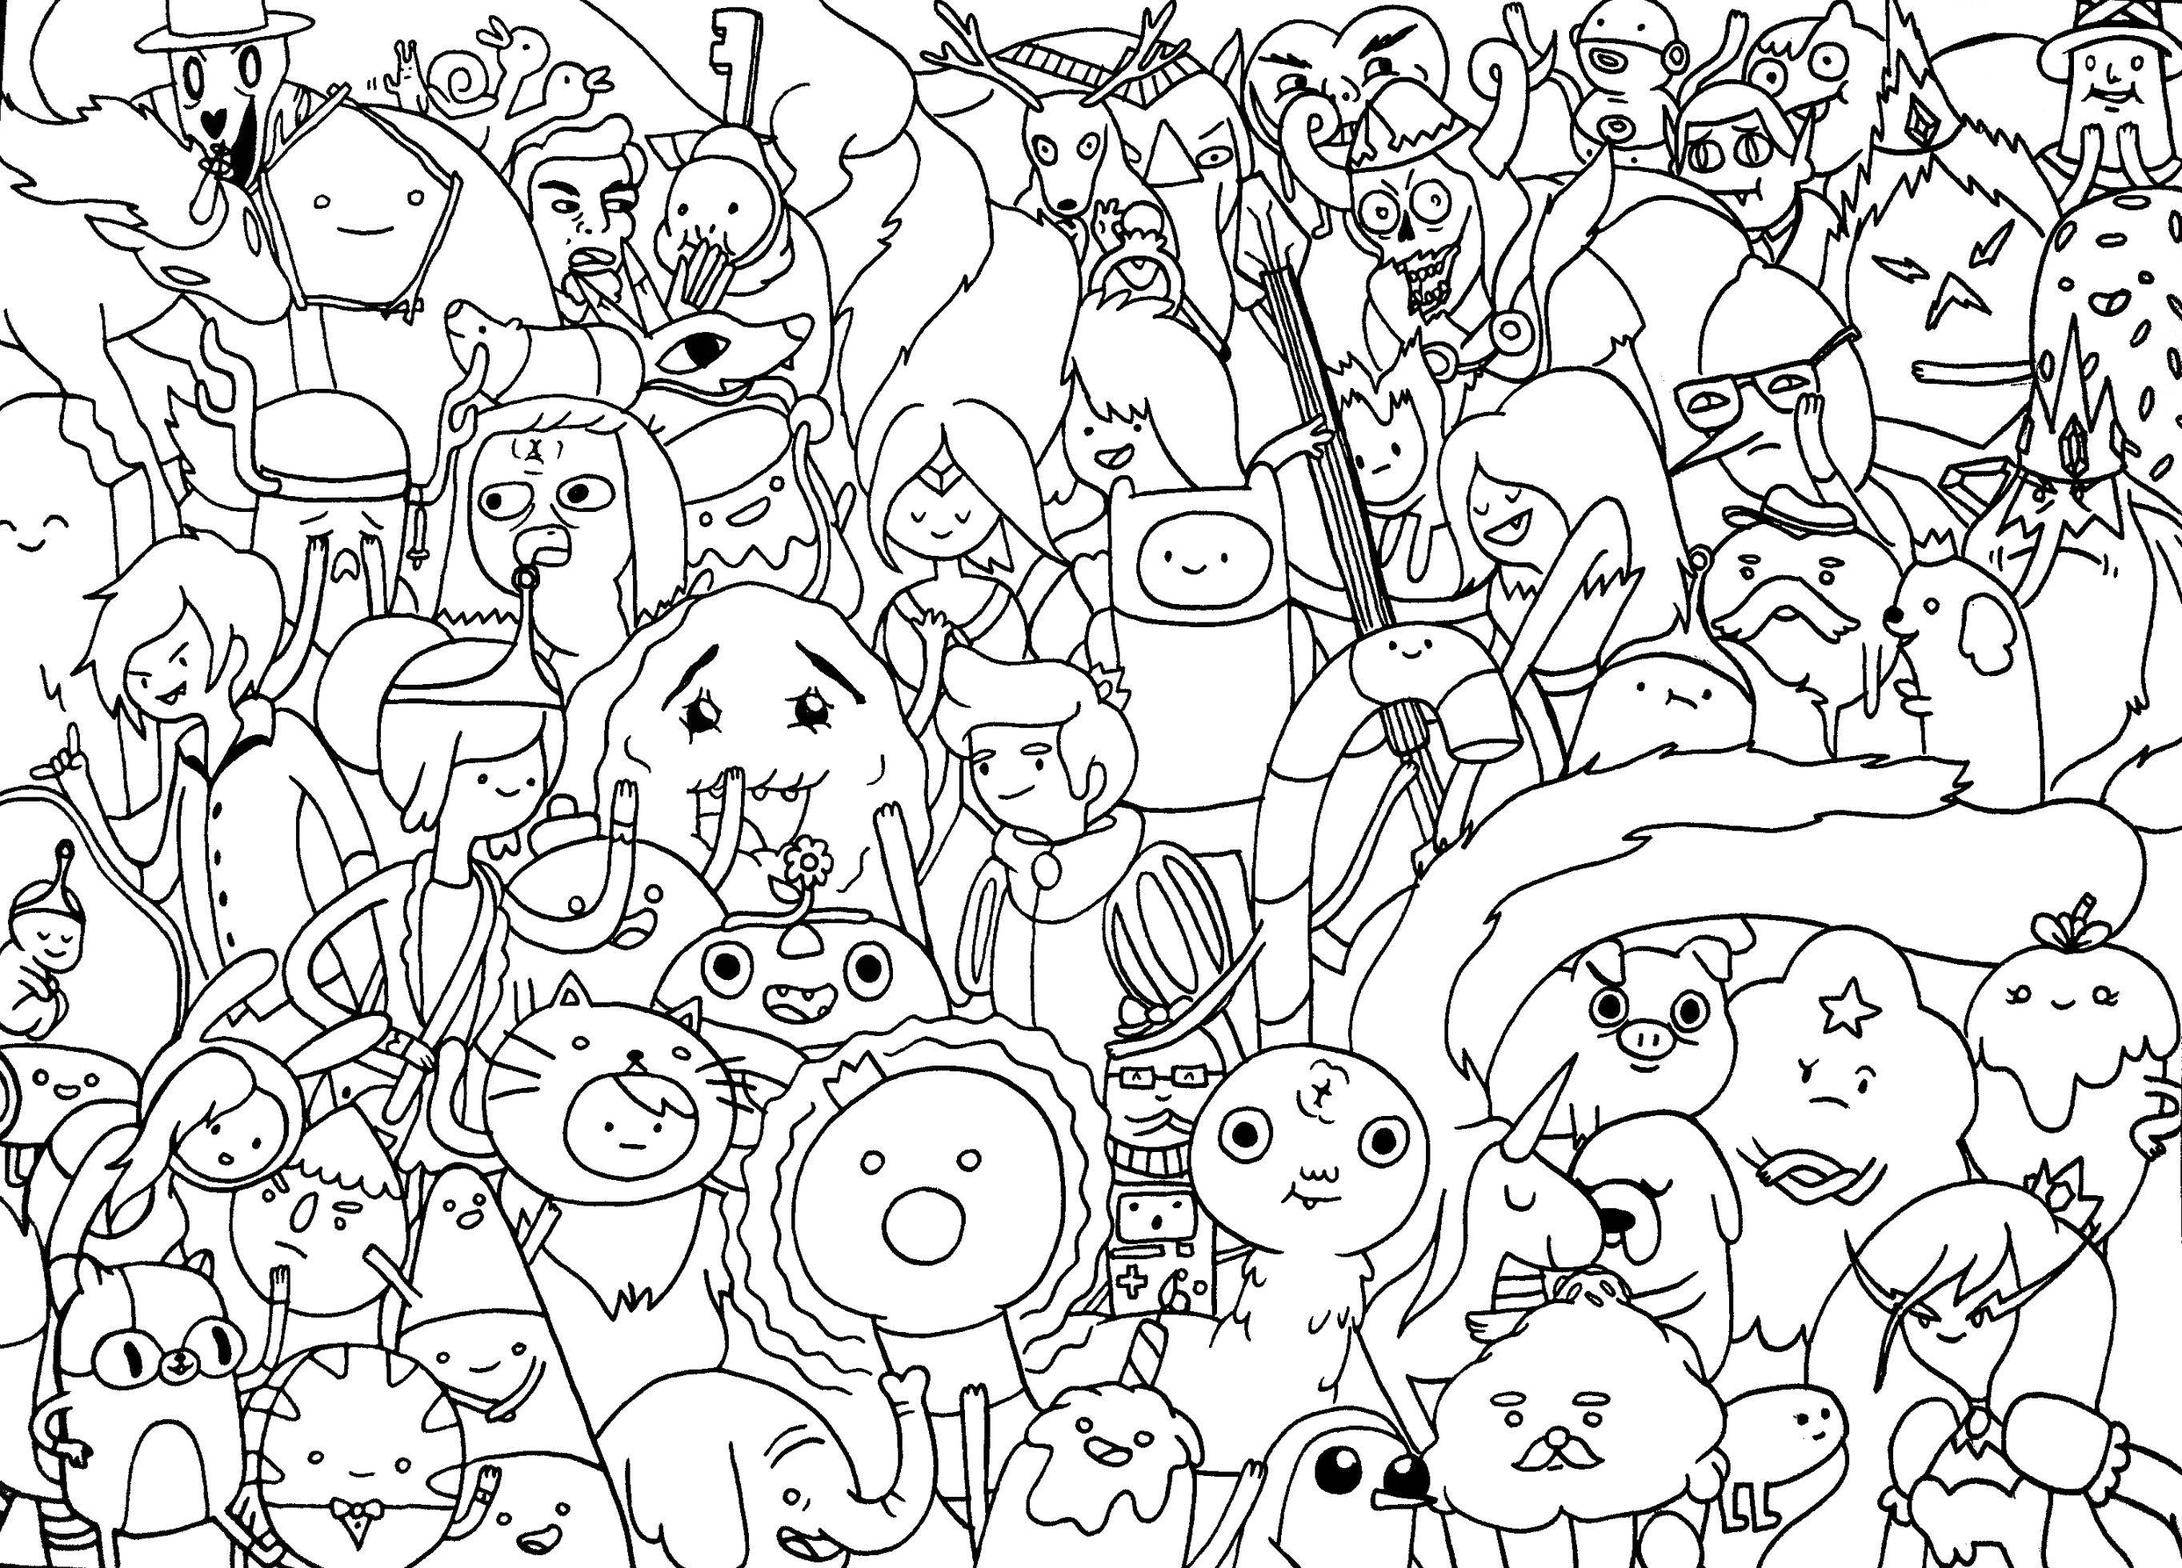 fiona adventure time coloring pages - photo#35